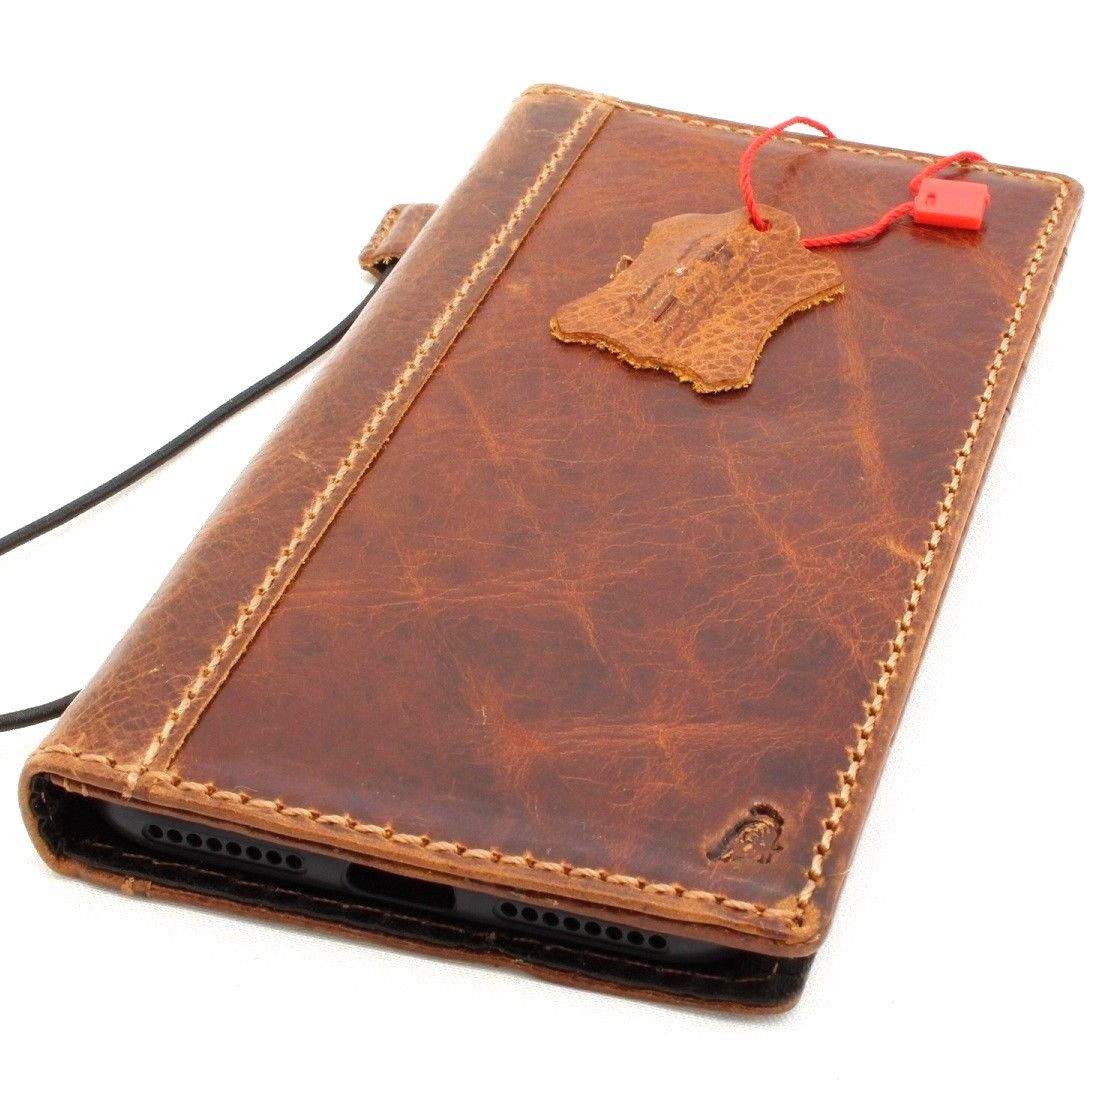 check out de689 dfb12 Genuine Leather Case for iPhone 8 Plus bible book wallet cover handmade  cards slots Slim holder Jafo vintage classic Daviscase